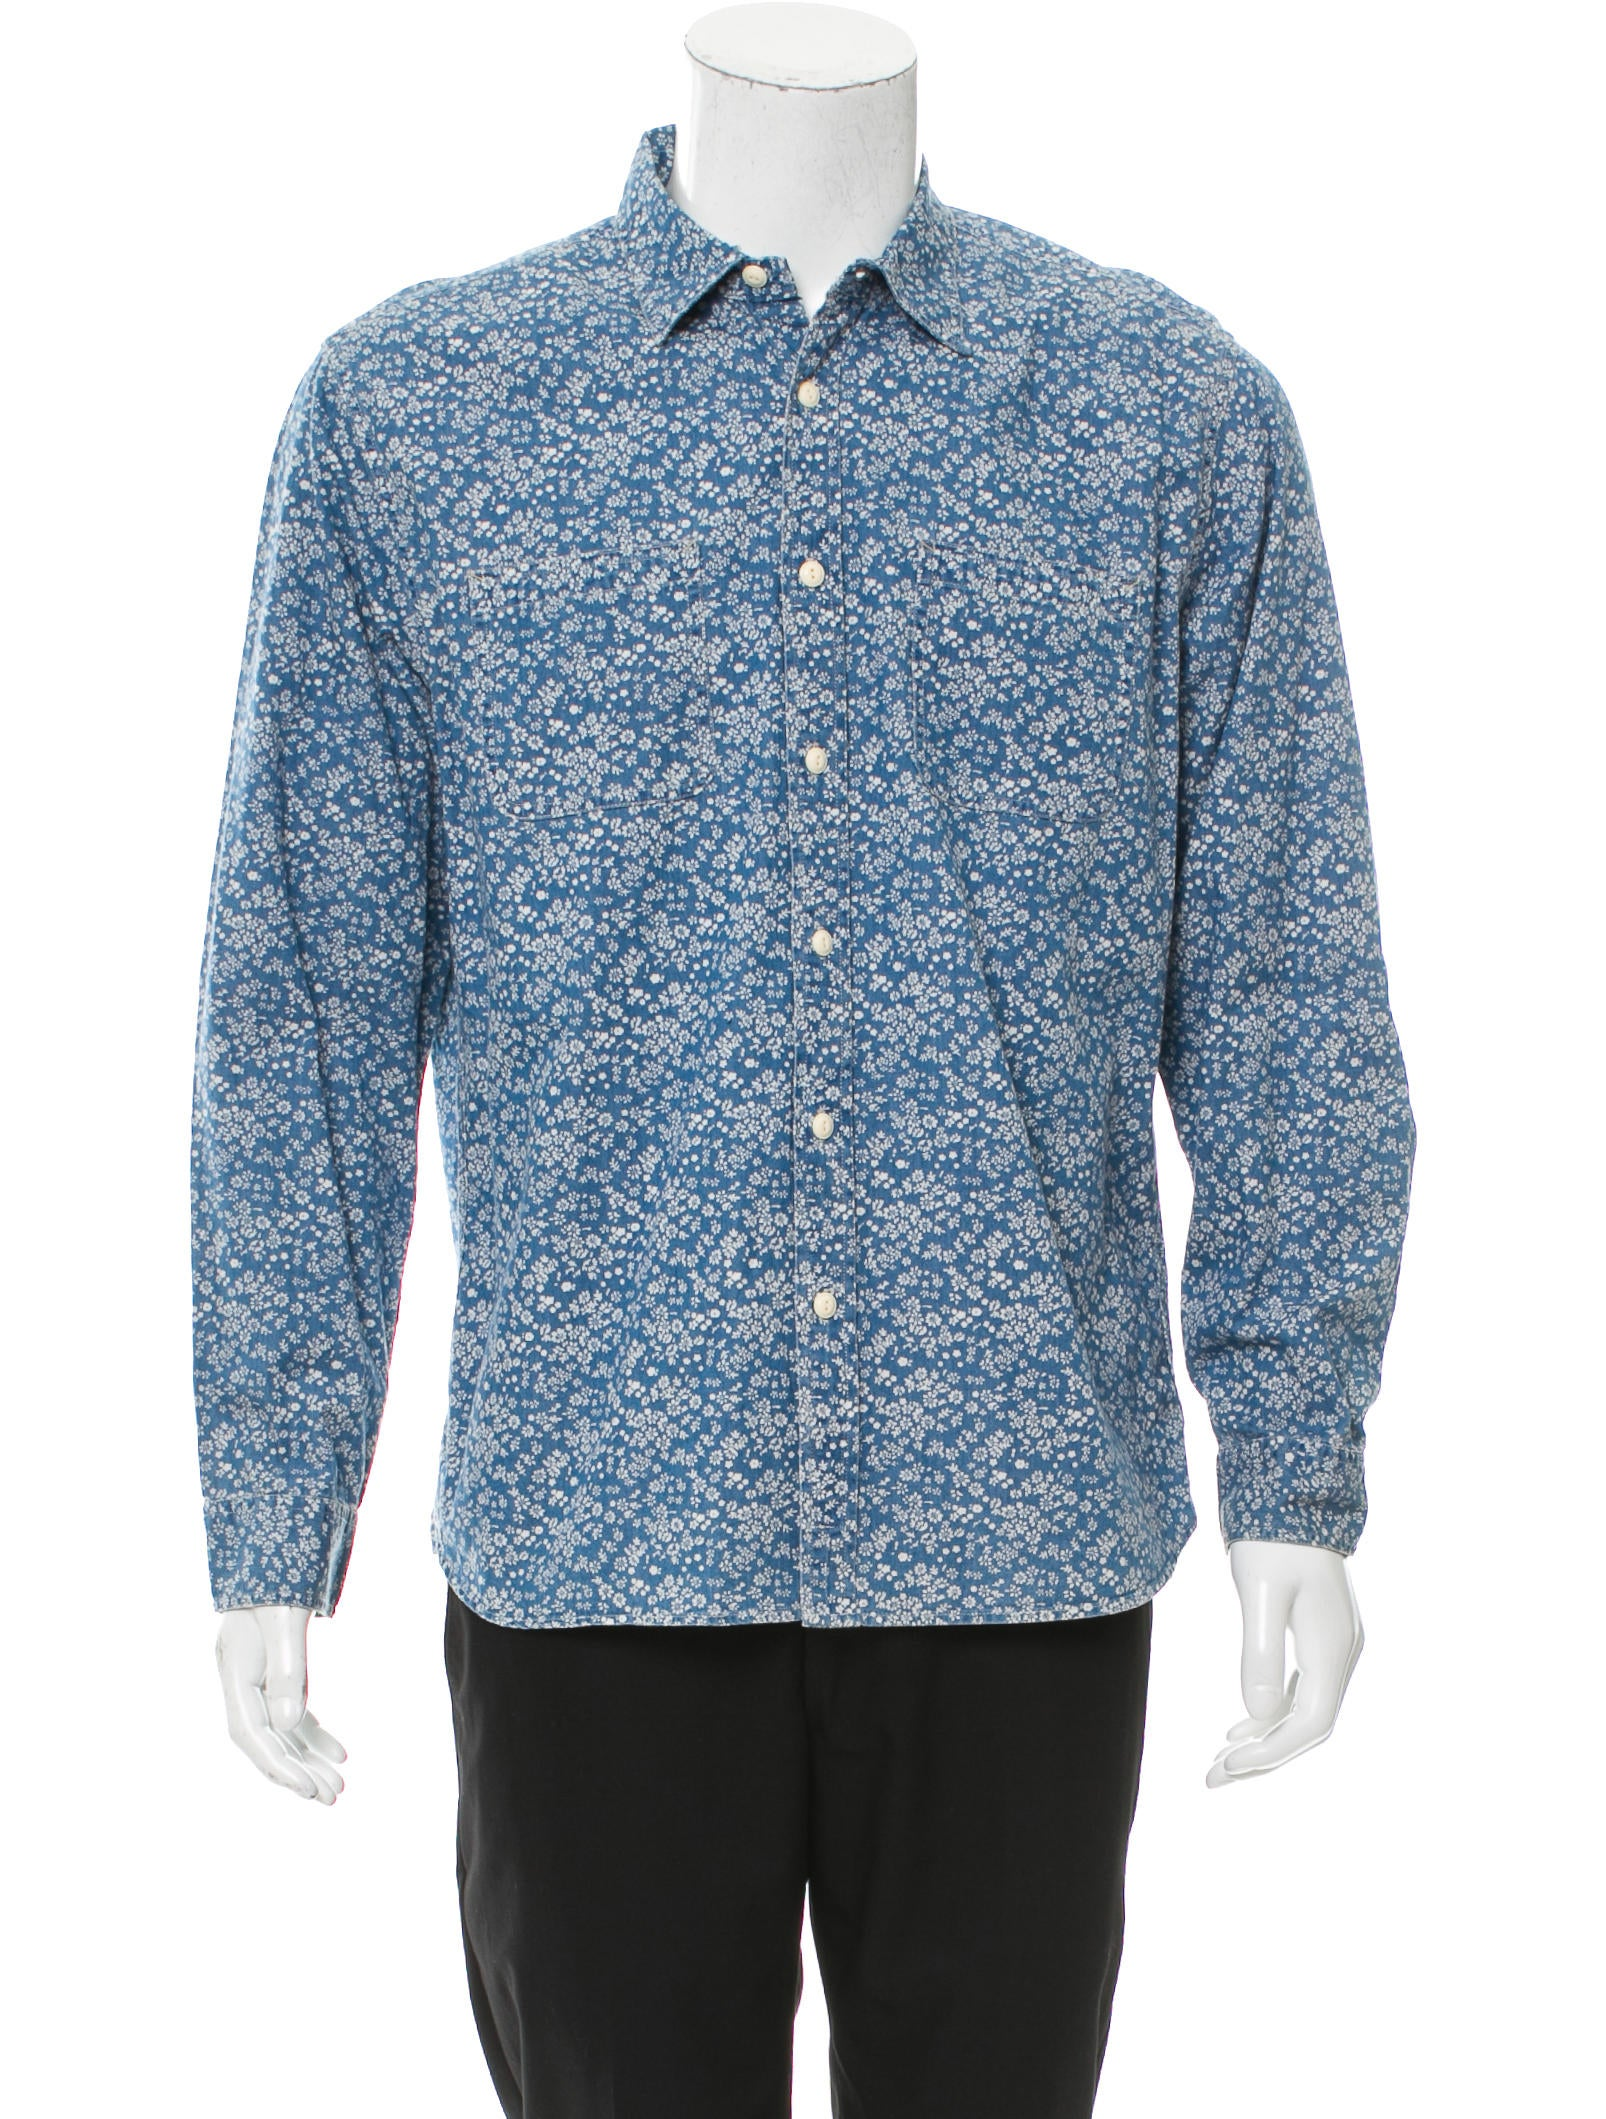 The Natural Reflections® Floral Print Back Chambray Shirt for women is a bright, colorful look for warm days. The front is made of classic chambray, while the back showcases a pretty floral print design.